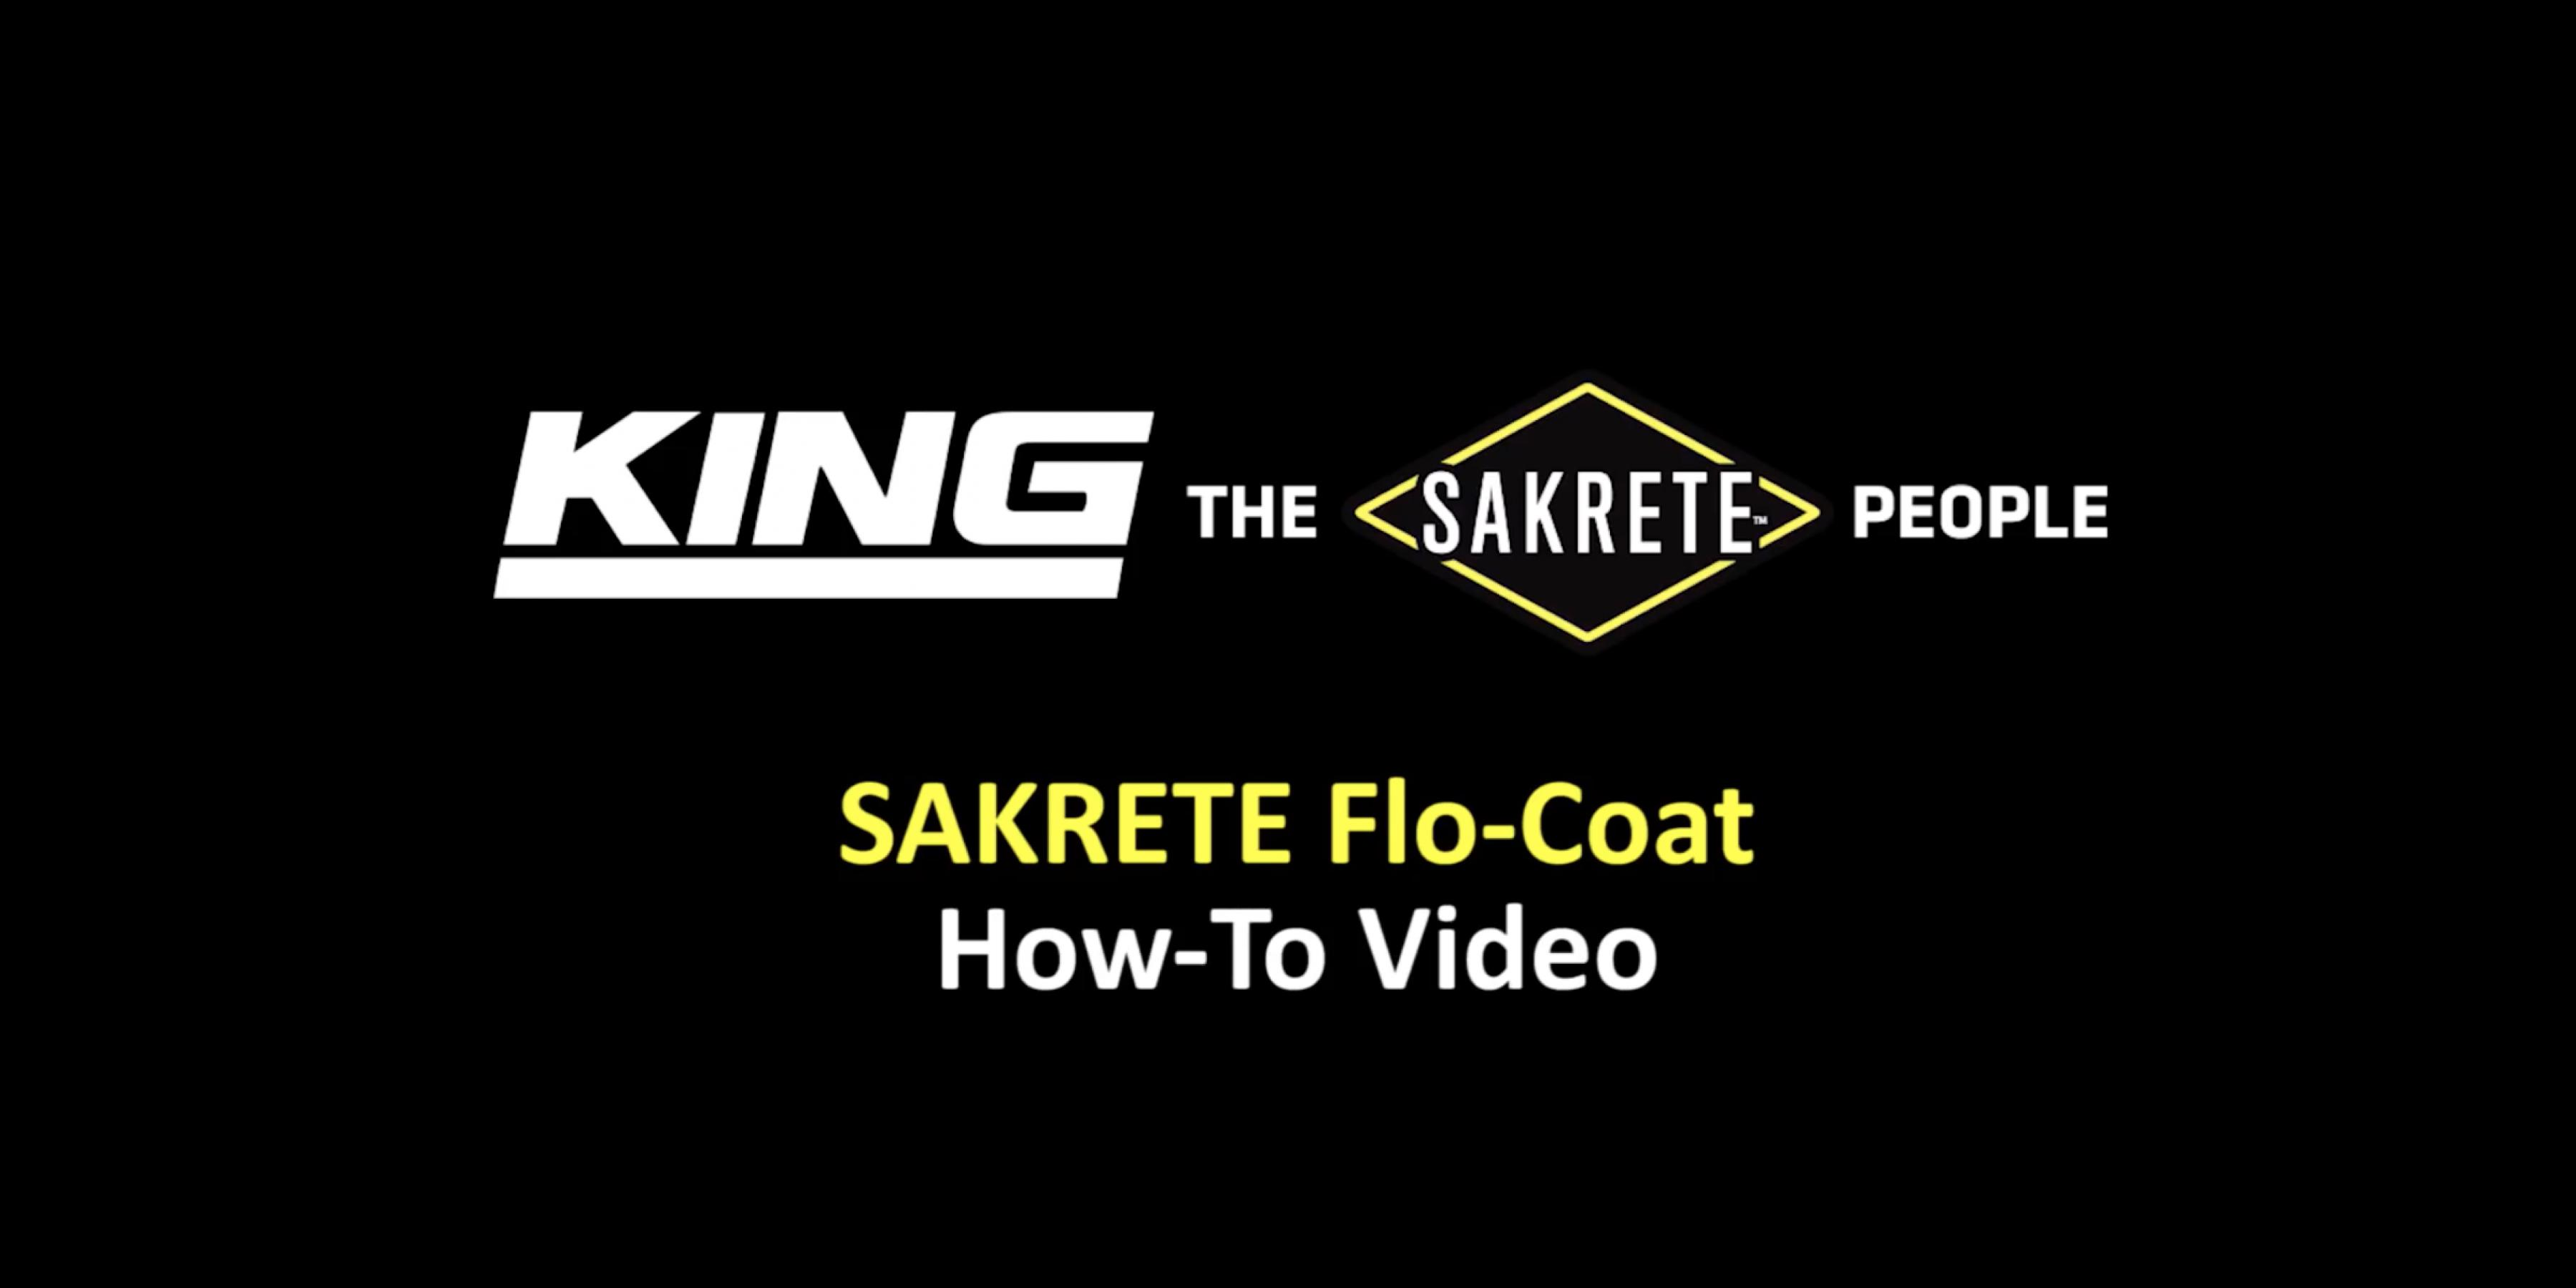 SAKRETE RAPID POST - How-To Video